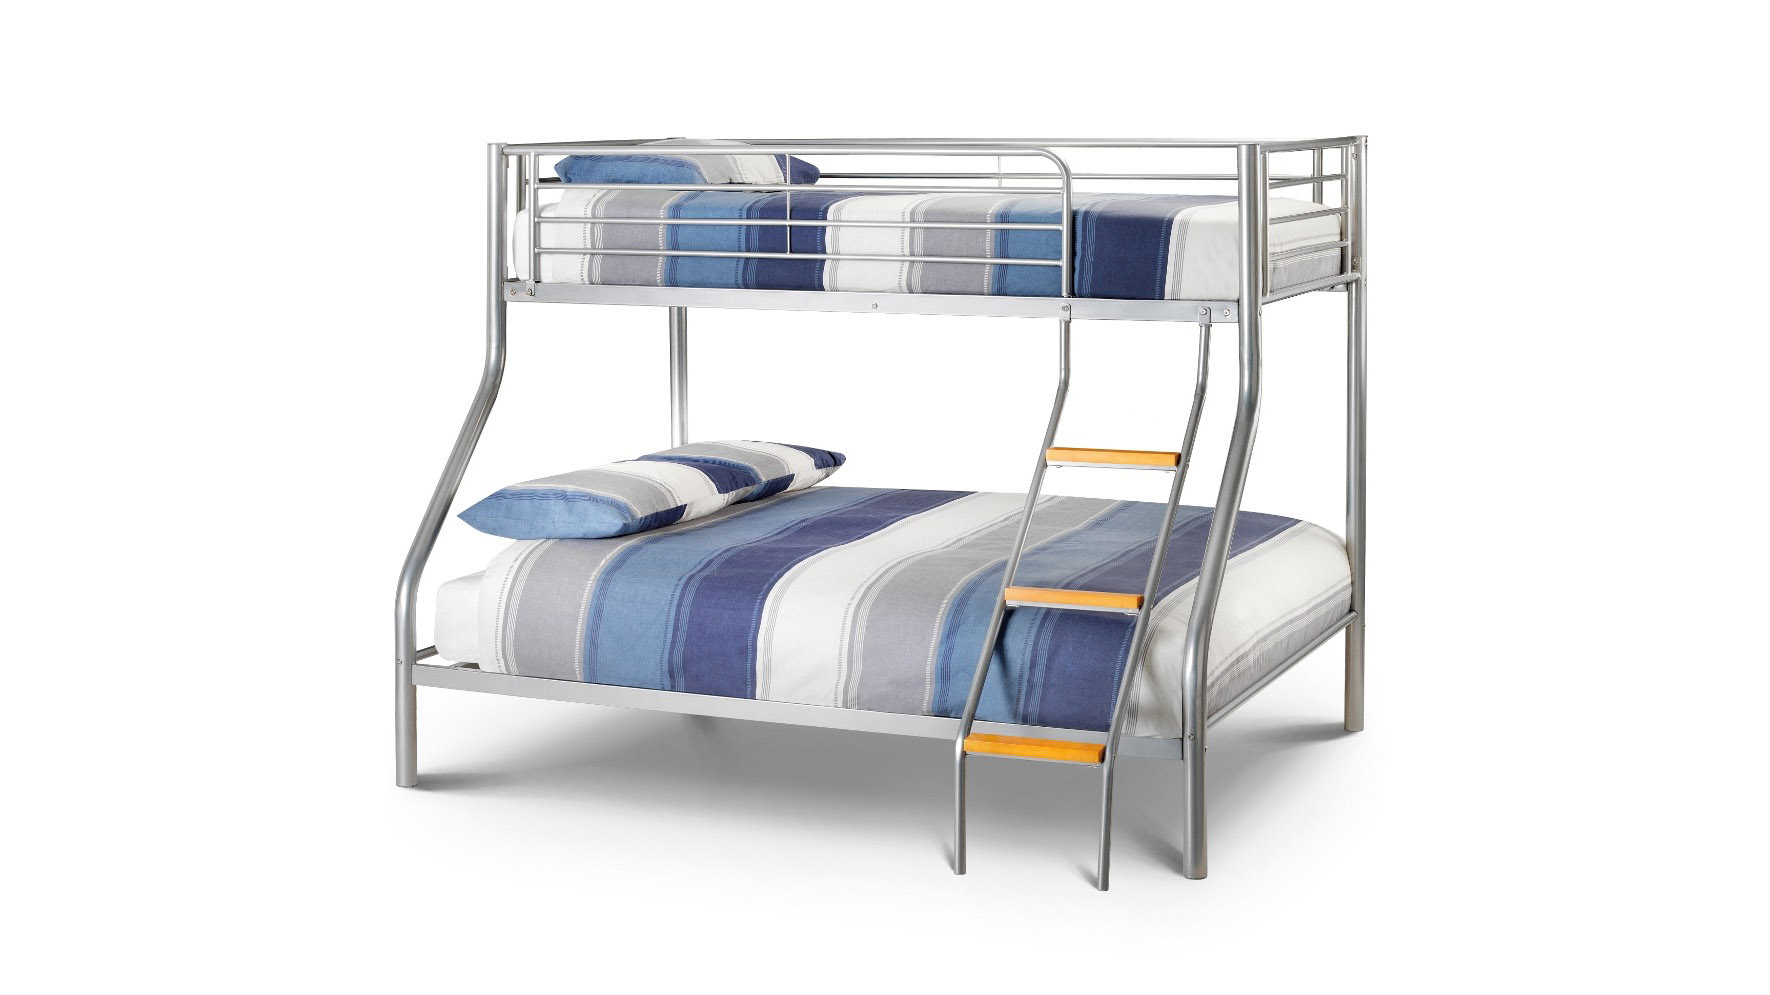 Best Bunk Bed: From Basic Bunk Beds To Storage And Slides | Expert Reviews